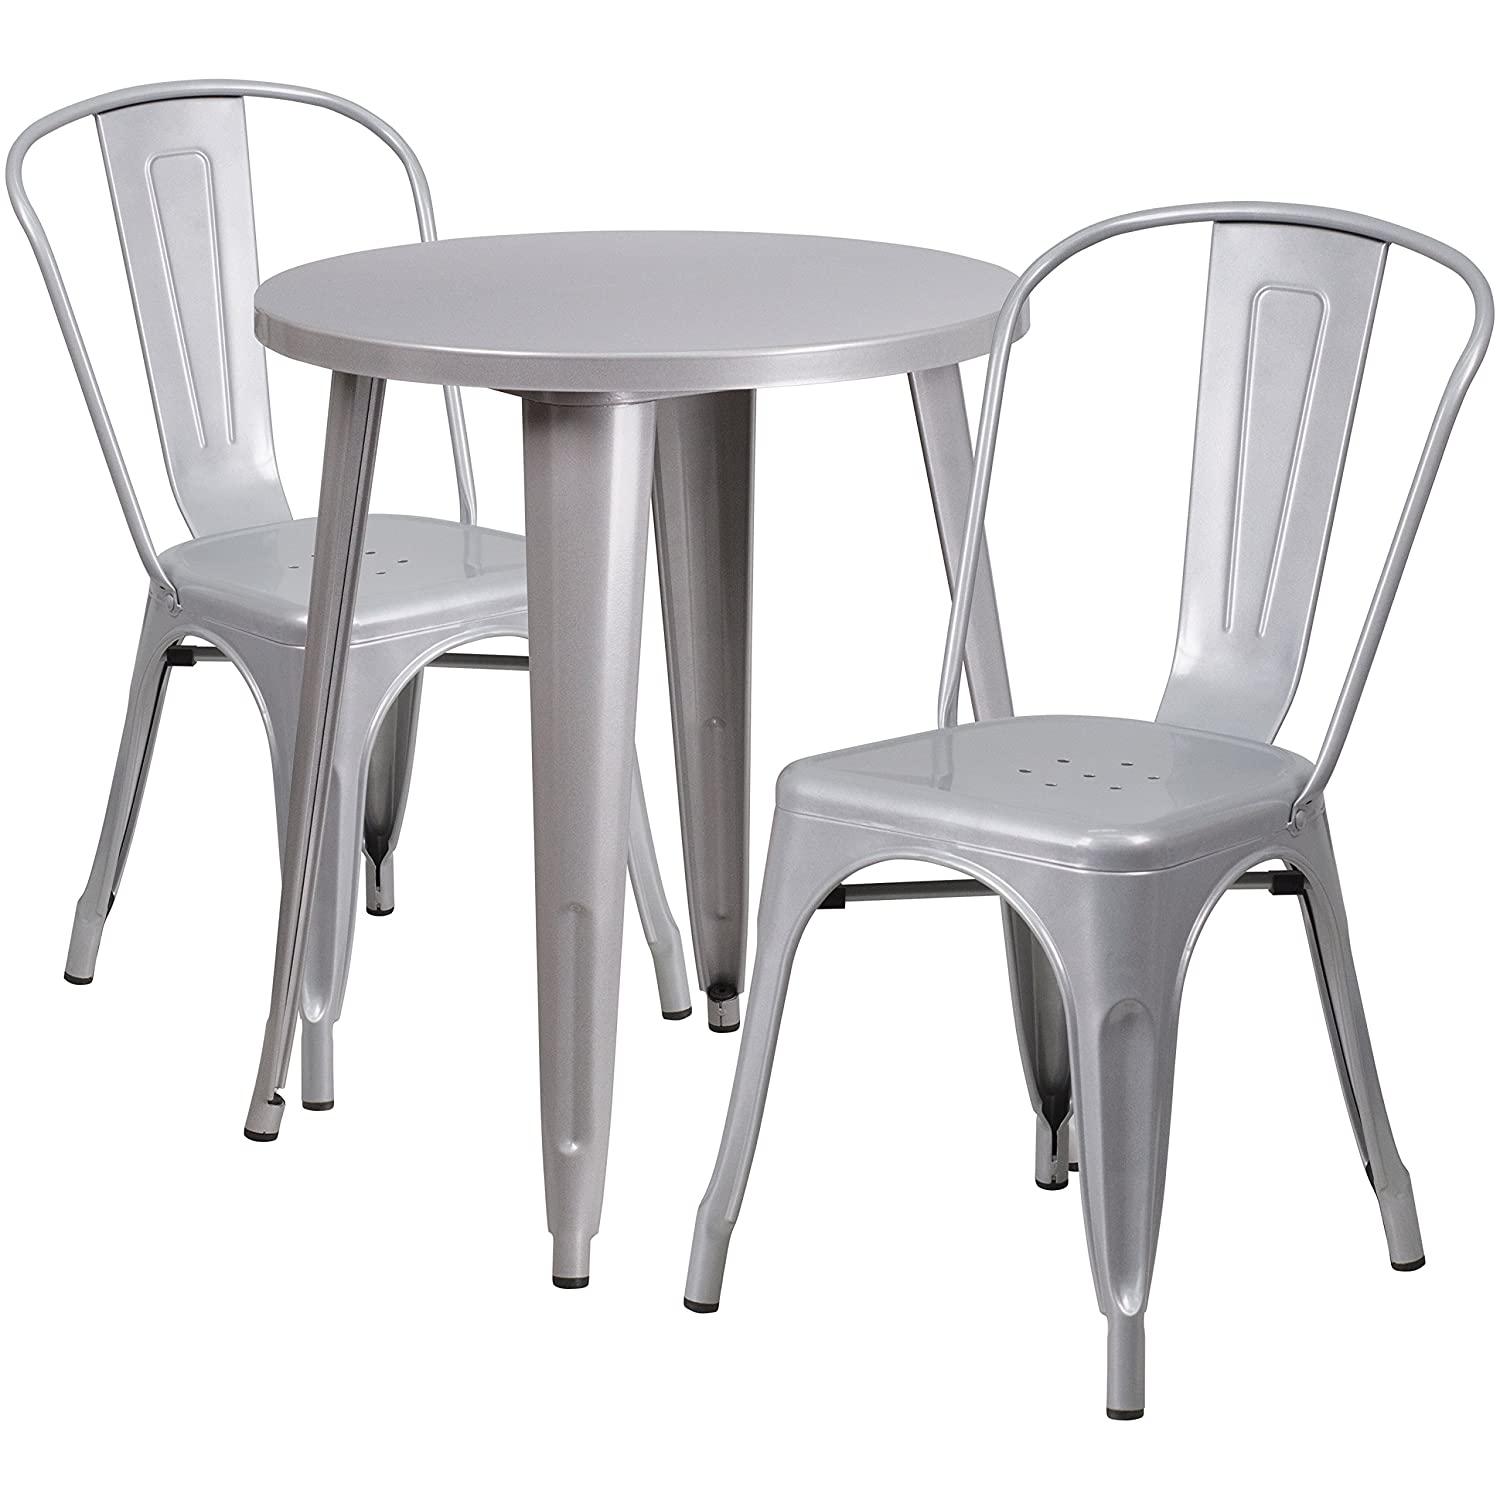 Awe Inspiring Flash Furniture 24 Round Silver Metal Indoor Outdoor Table Set With 2 Cafe Chairs Interior Design Ideas Clesiryabchikinfo